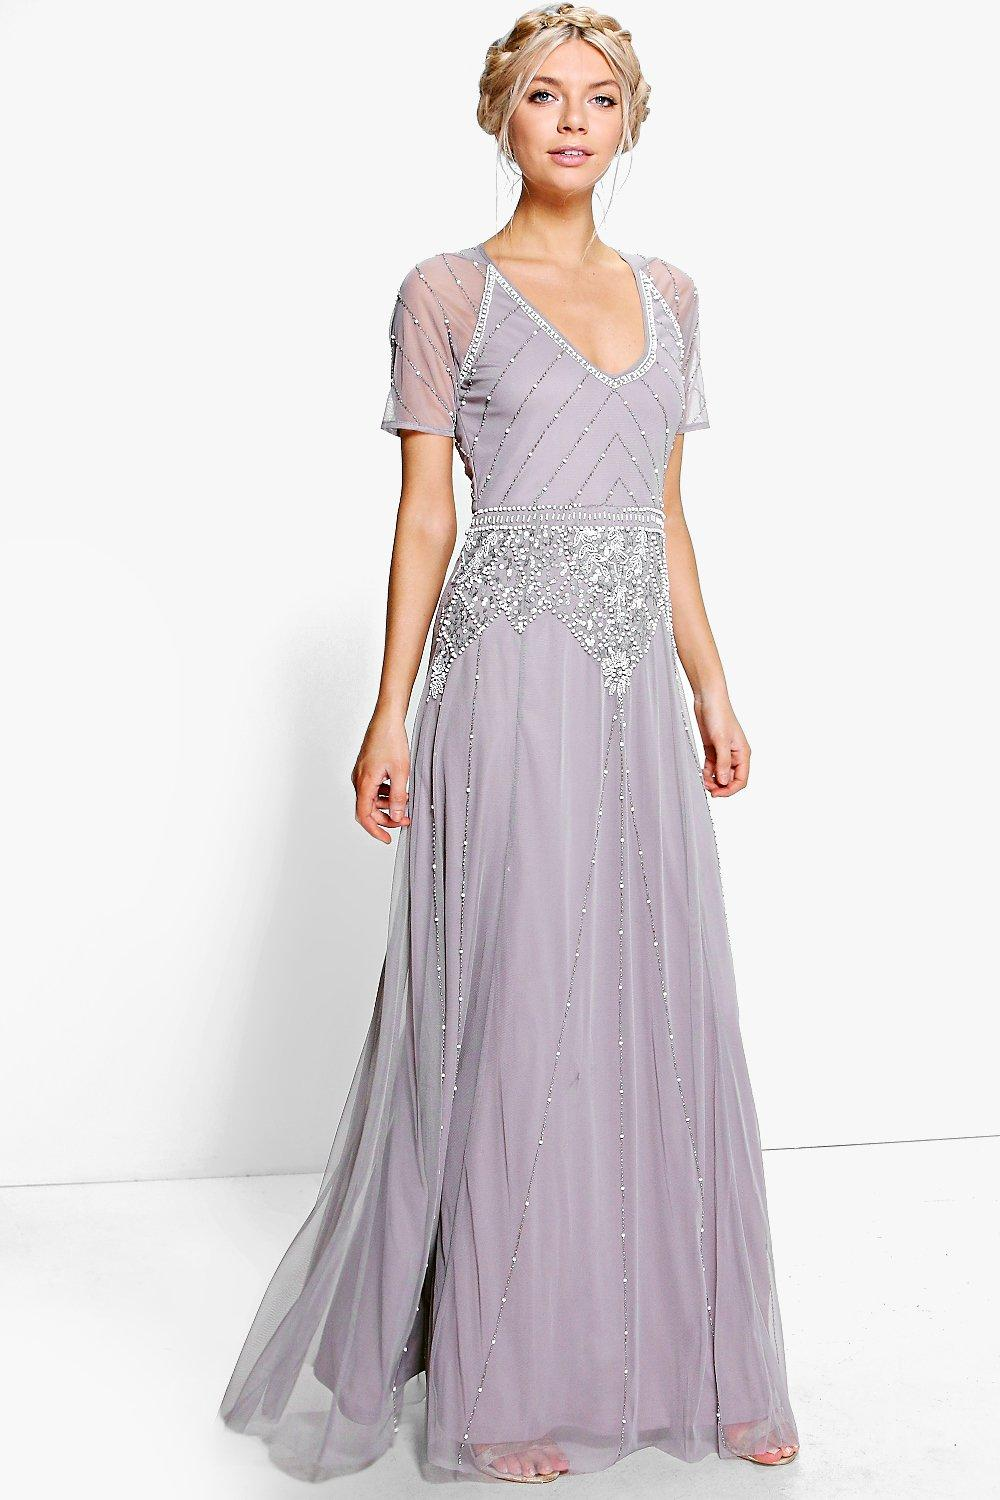 1920s Evening Dresses & Formal Gowns Boutique Beaded Cap Sleeve Maxi Dress $100.00 AT vintagedancer.com